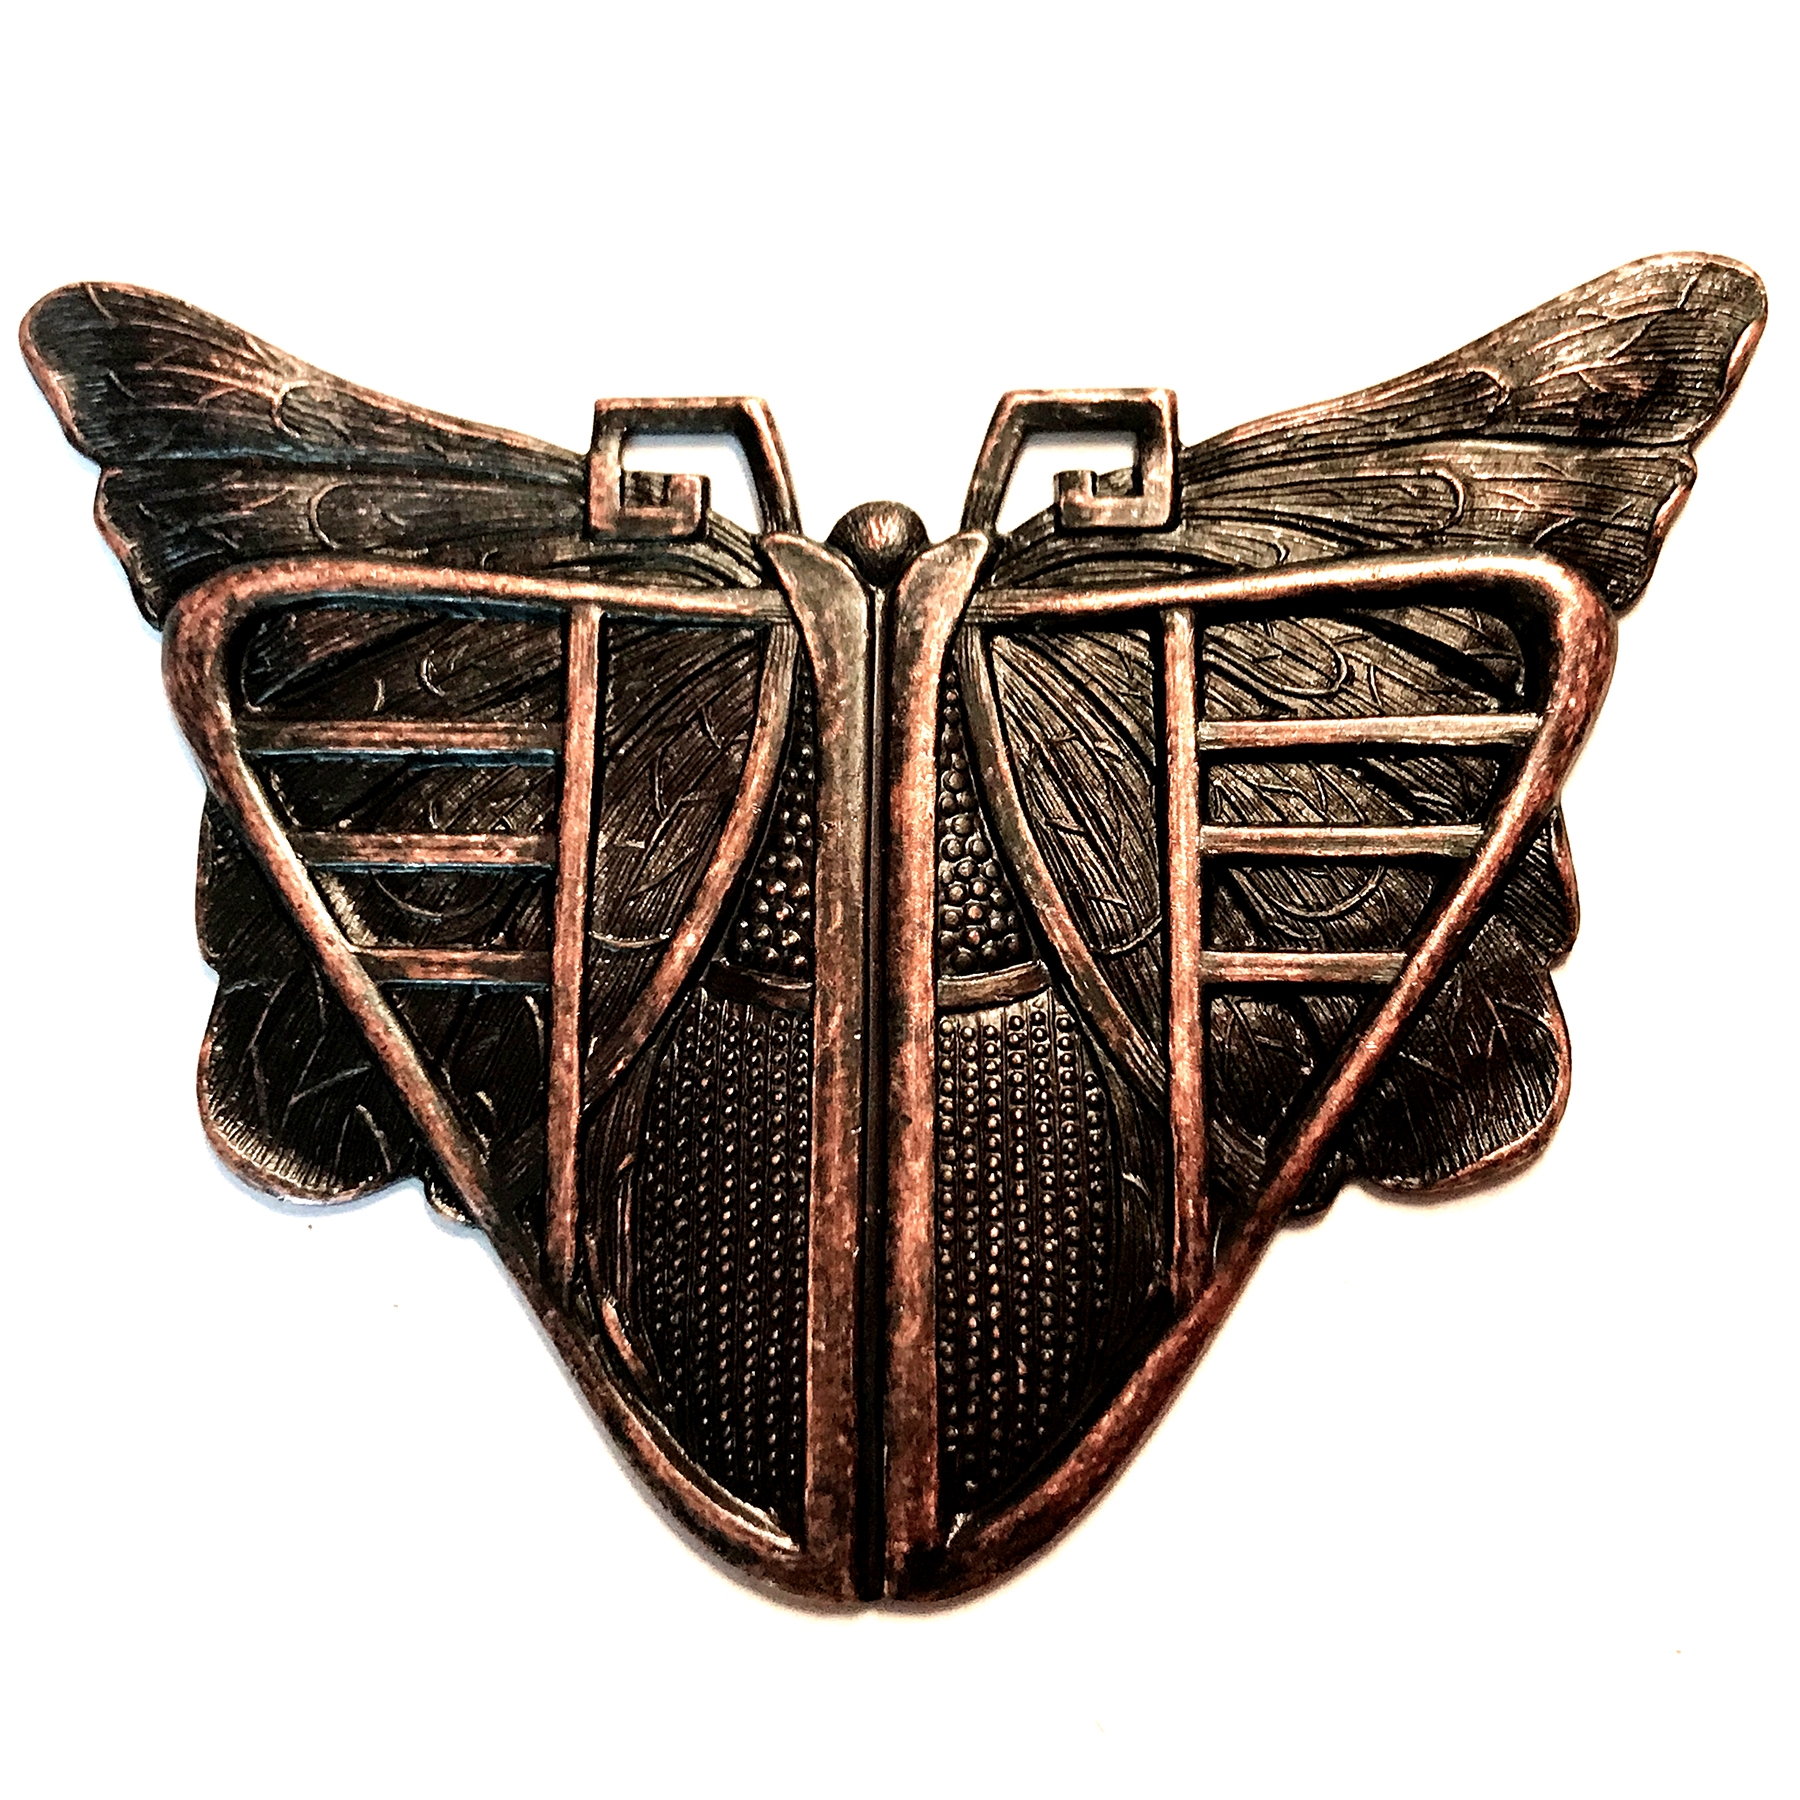 brass stampings, mothra, rusted iron brass, 03409, antique copper, Bsue Boutiques, nickel free, US made, vintage jewelry supplies, brass jewelry parts, butterfly stampings,